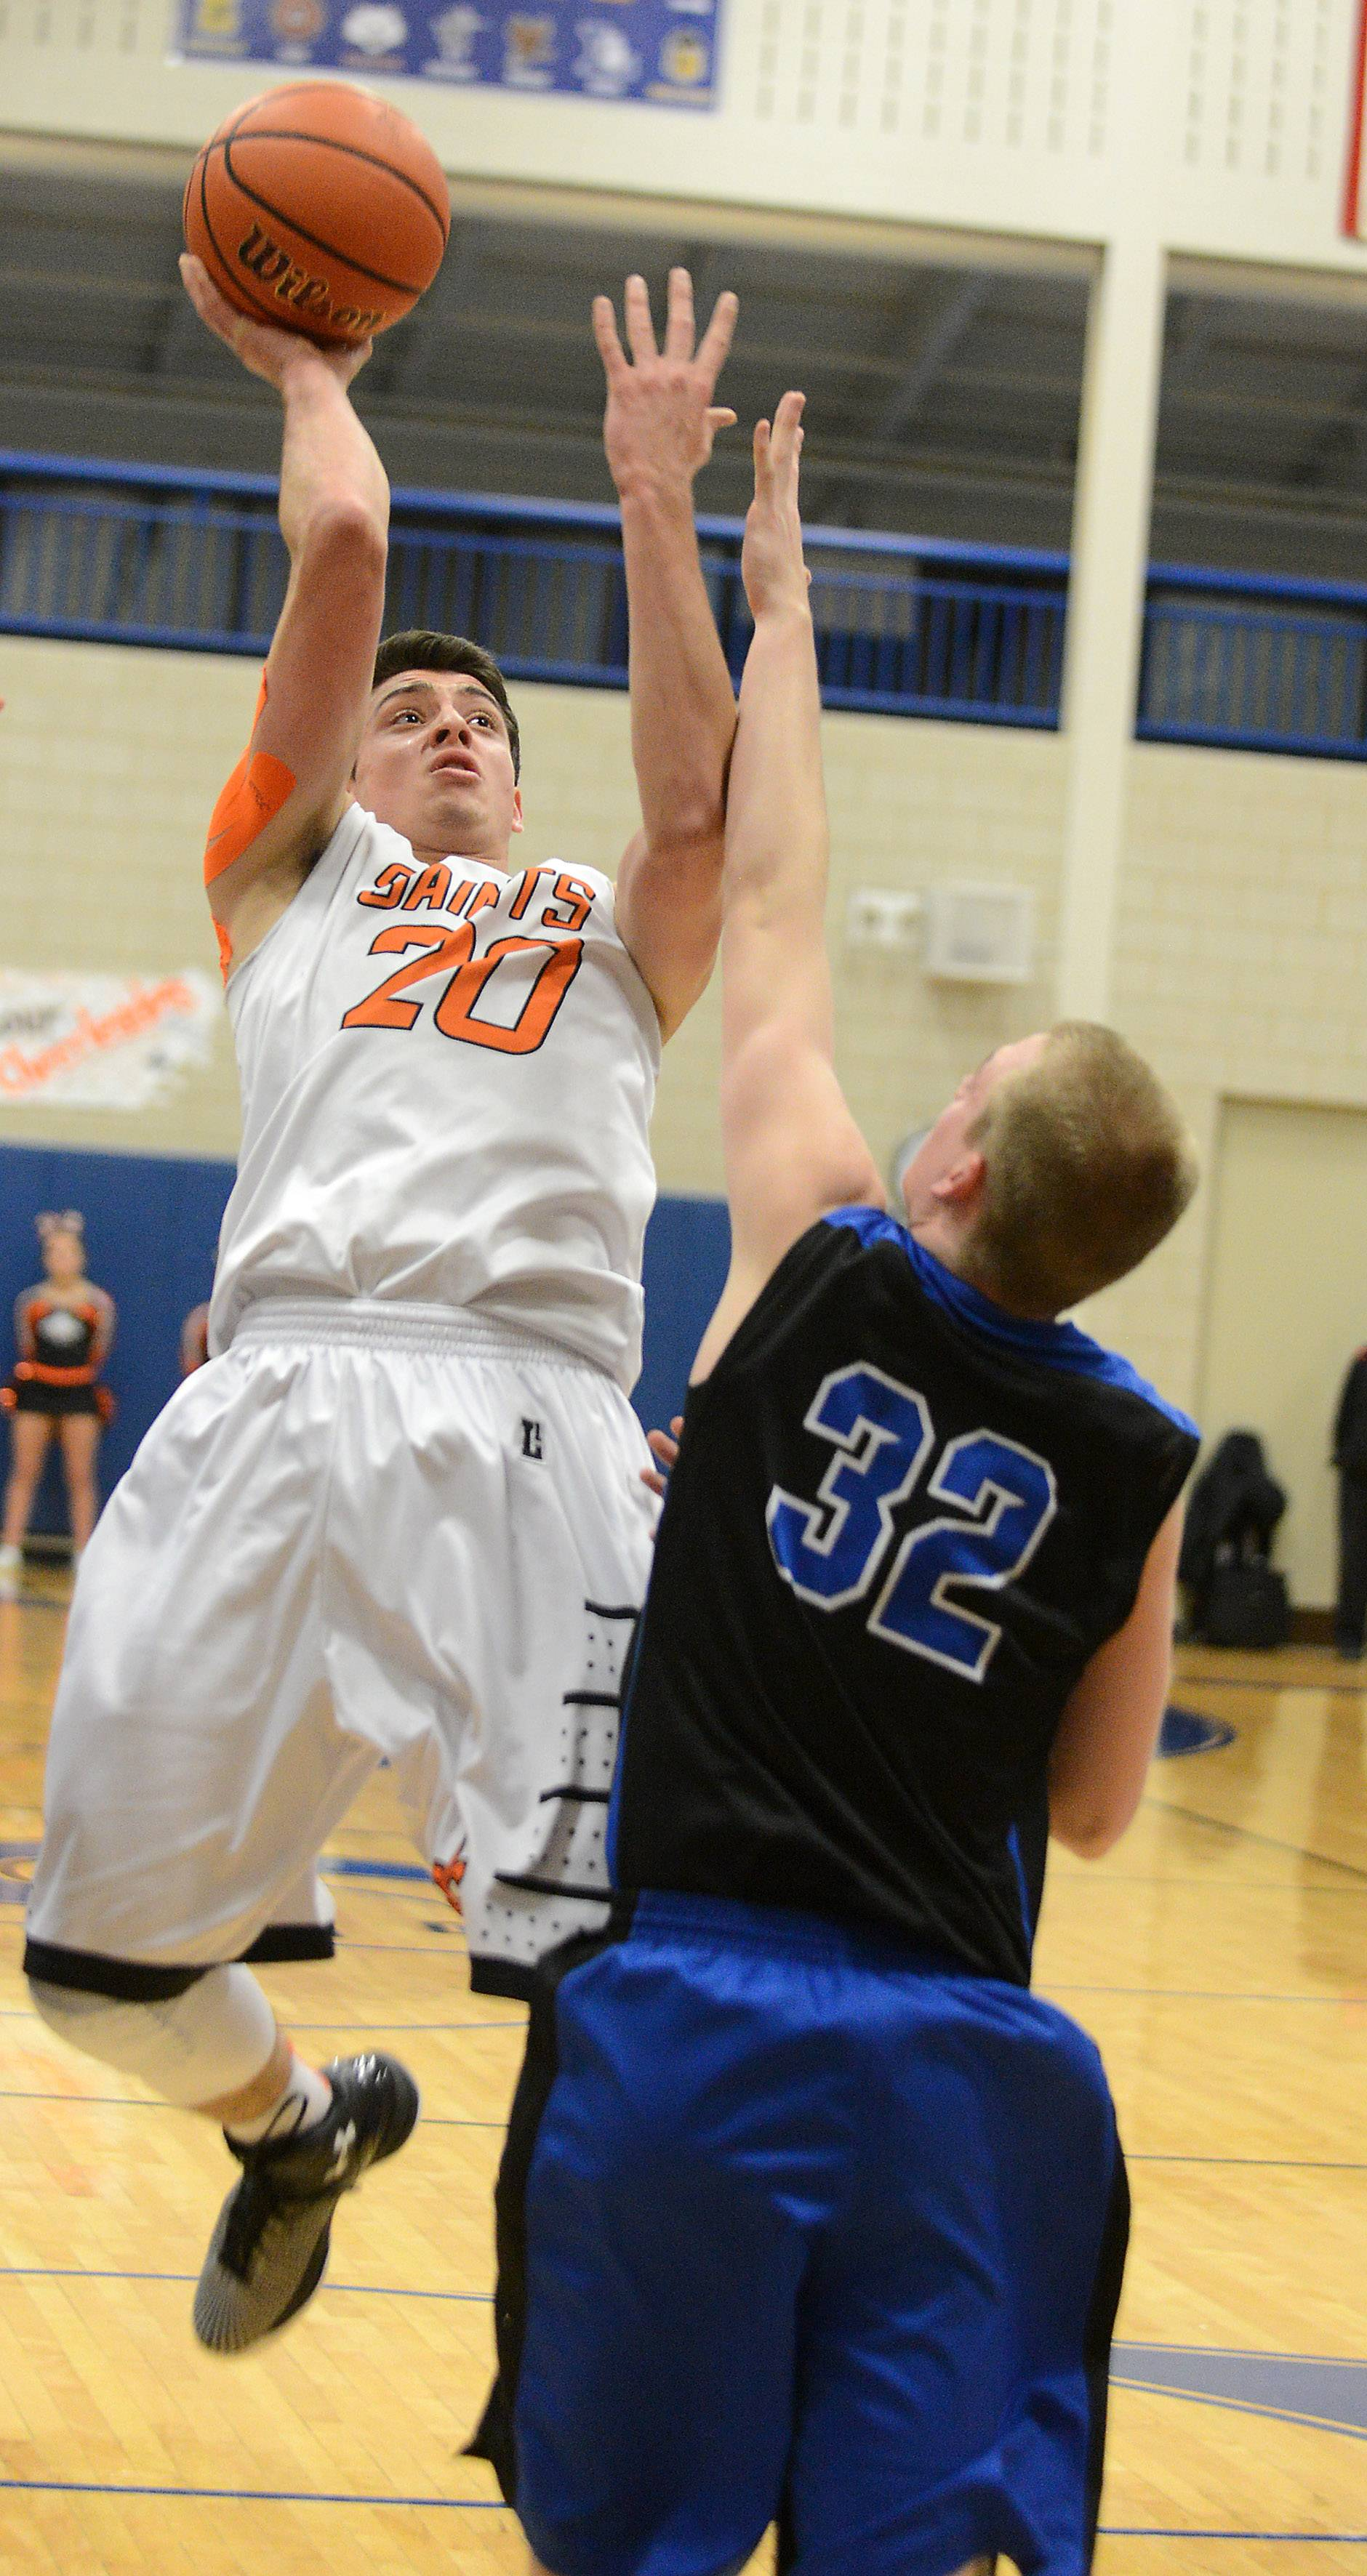 St. Charles East grinds out win over St. Charles North